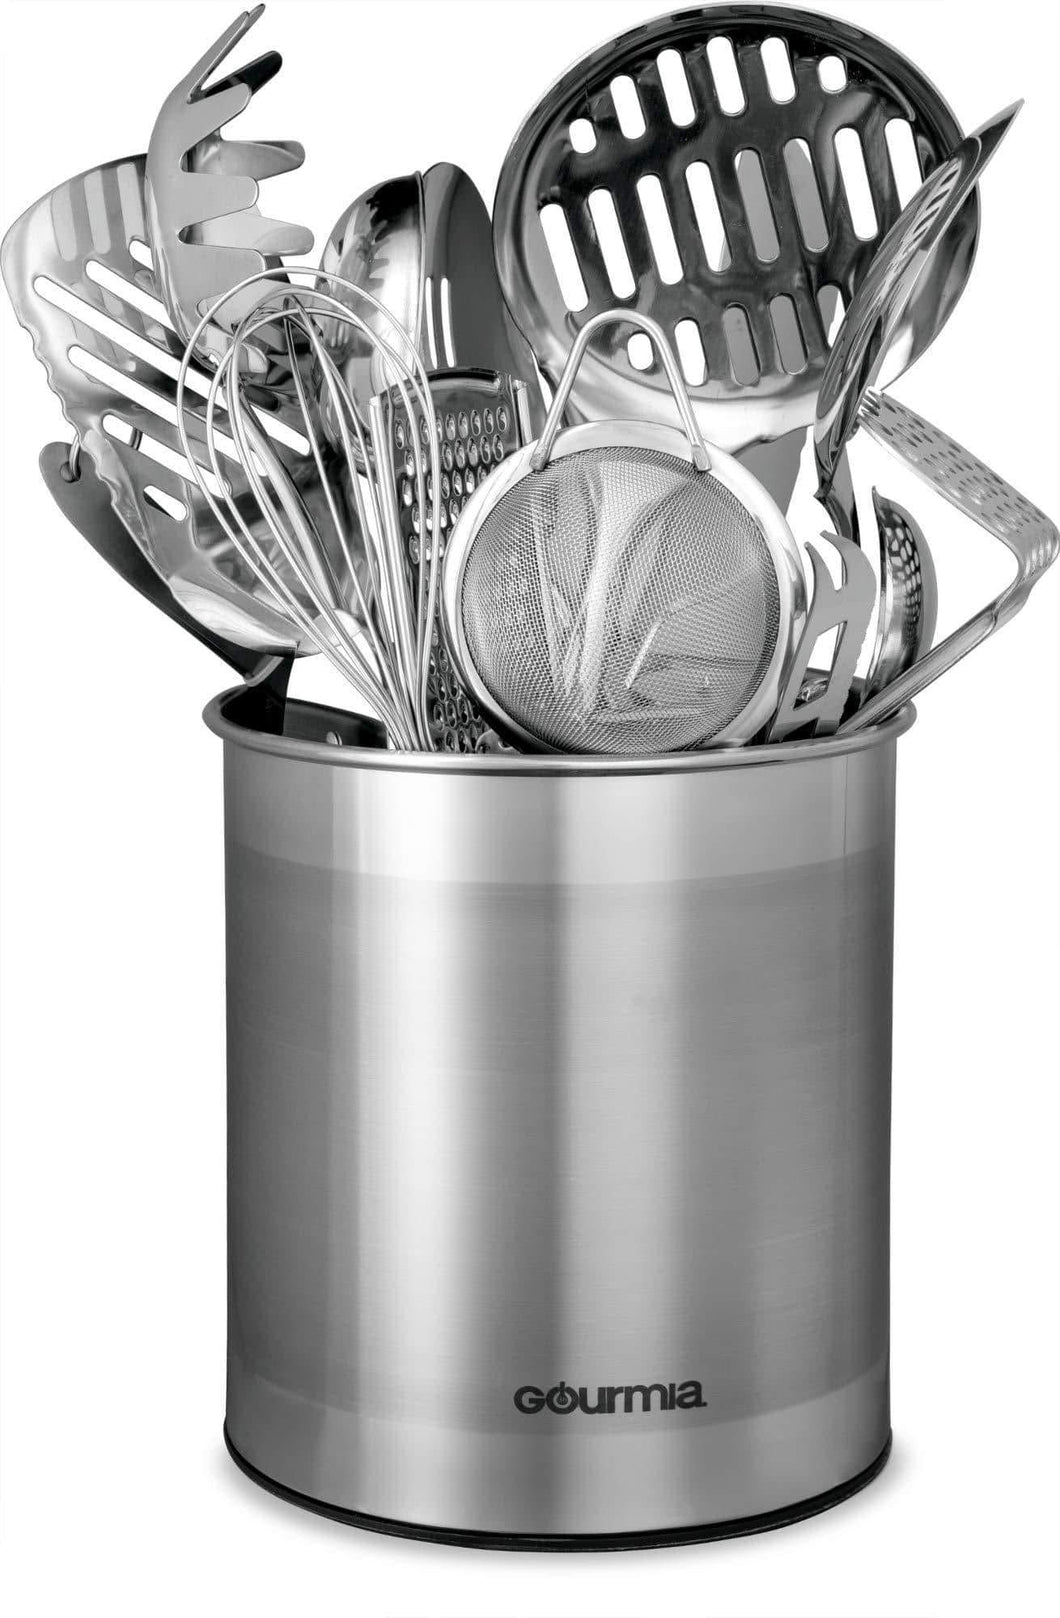 Try gourmia gch9345 rotating kitchen utensil holder spinning stainless steel organizer to store cooking and serving tools dishwasher safe non slip bottom use as caddy